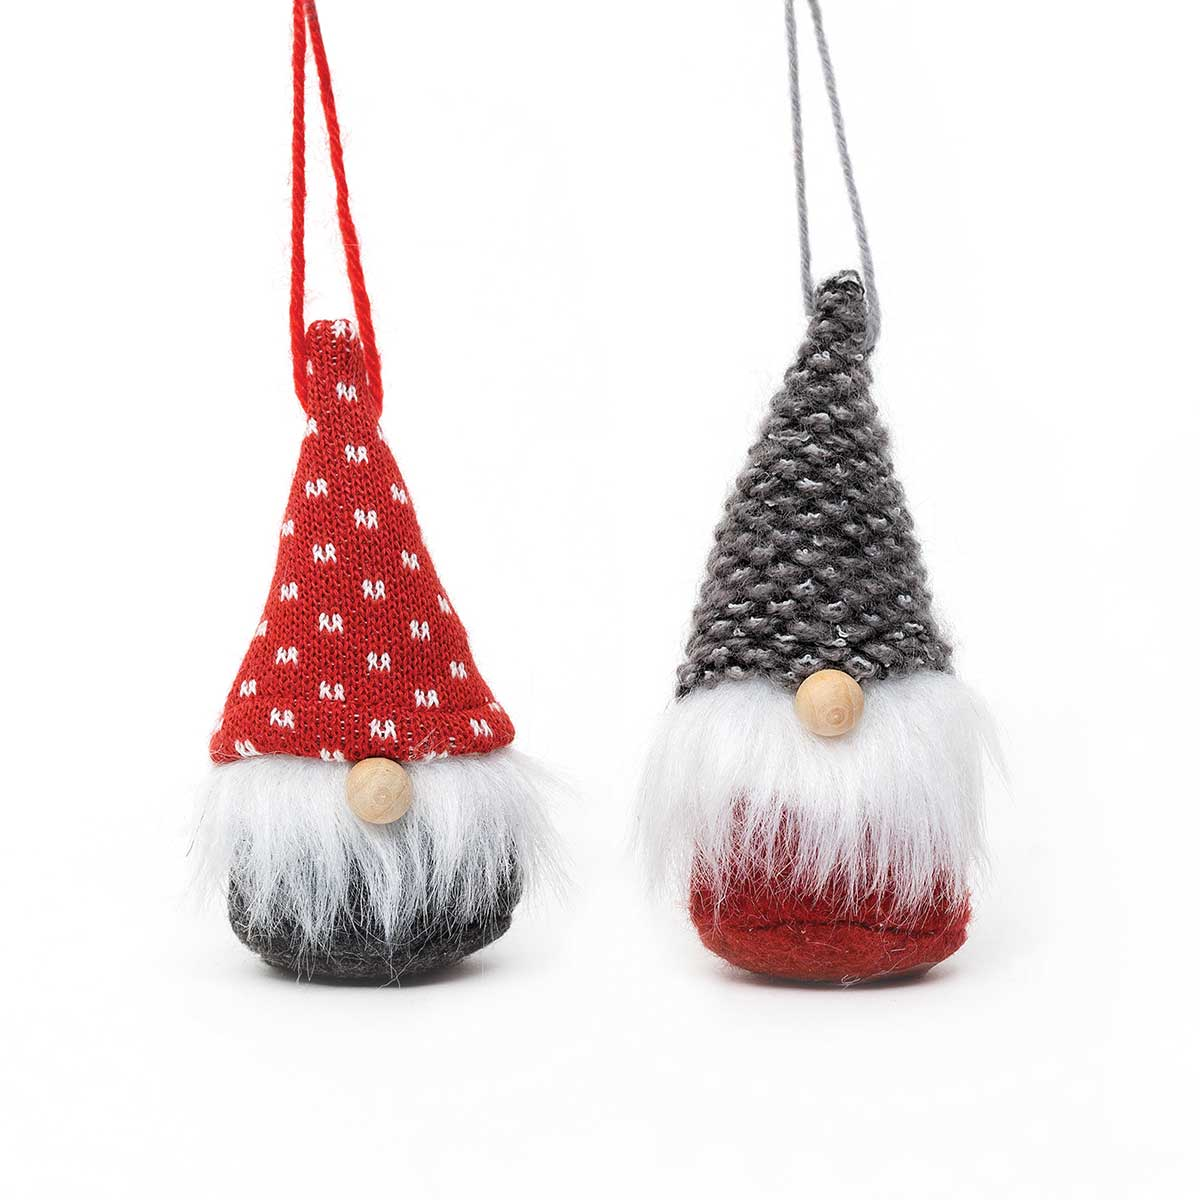 GREY/RED GNOME ORNAMENT WITH WOOD NOSE